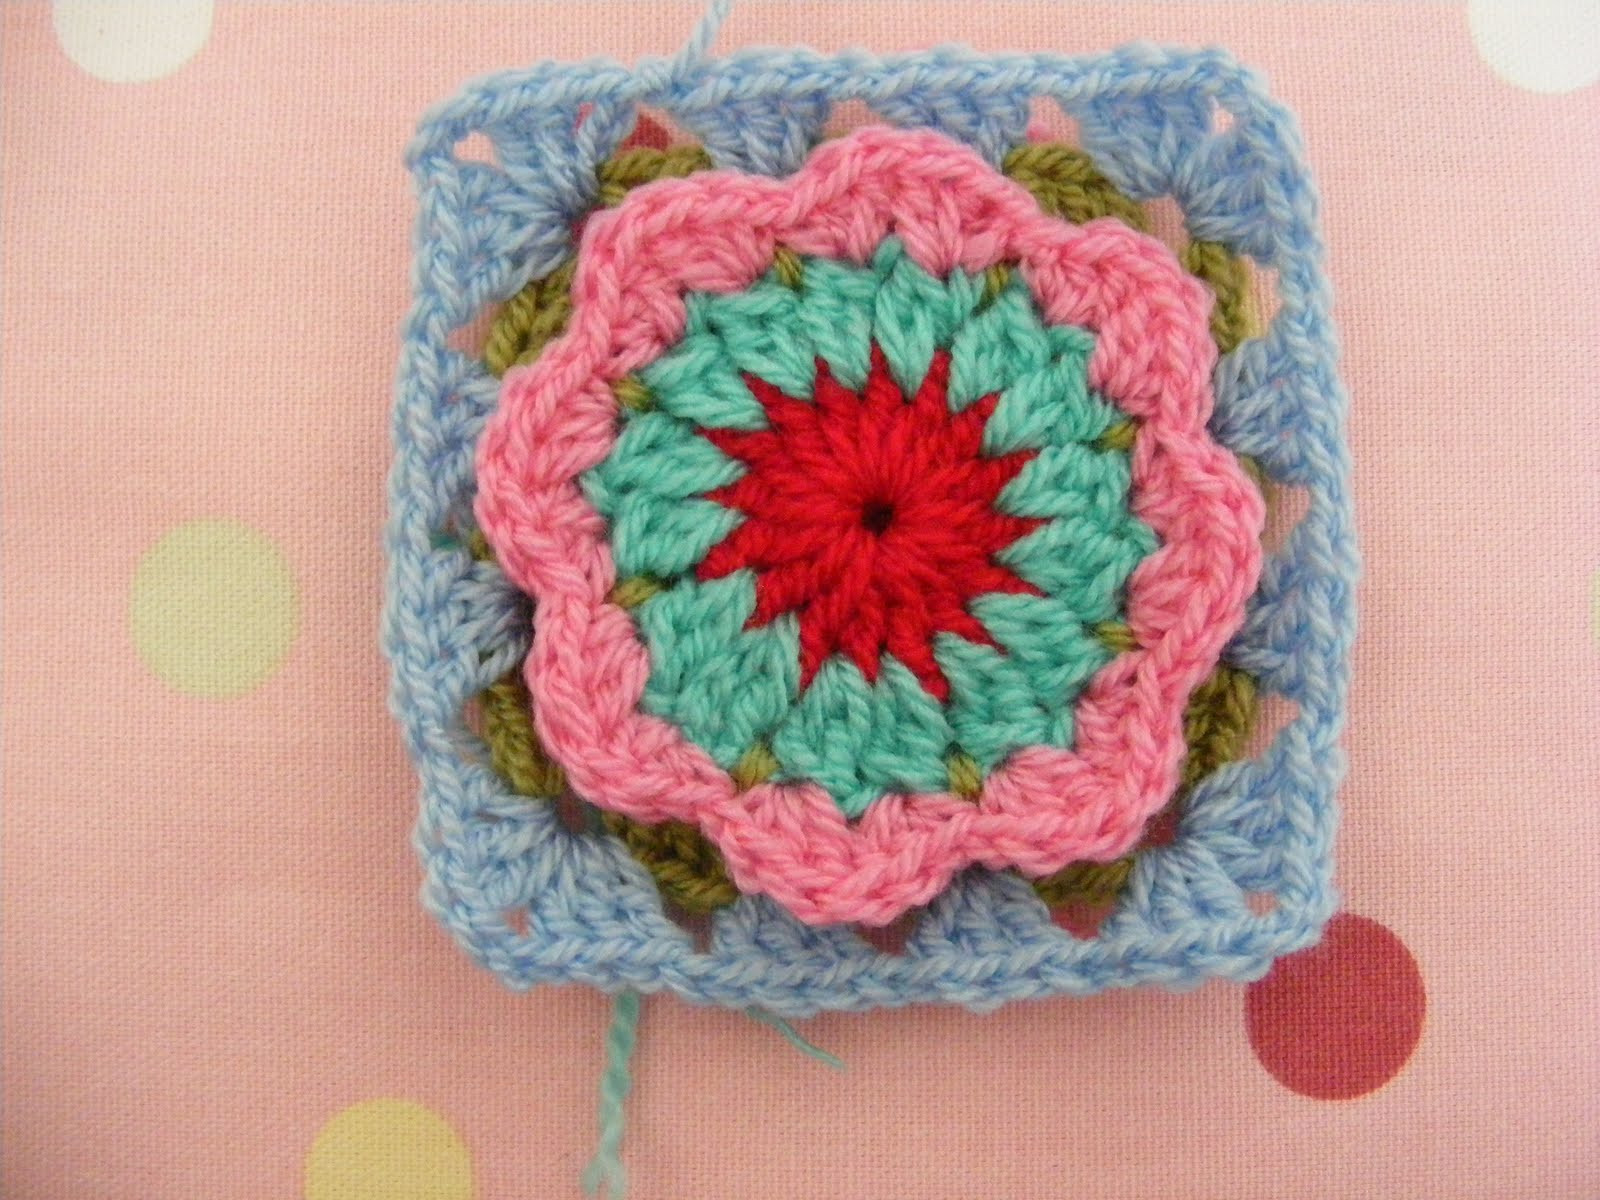 Flower Granny Square Beautiful Pinkfluffywarrior Circle In A Granny Square Flower In Of Wonderful 45 Pictures Flower Granny Square